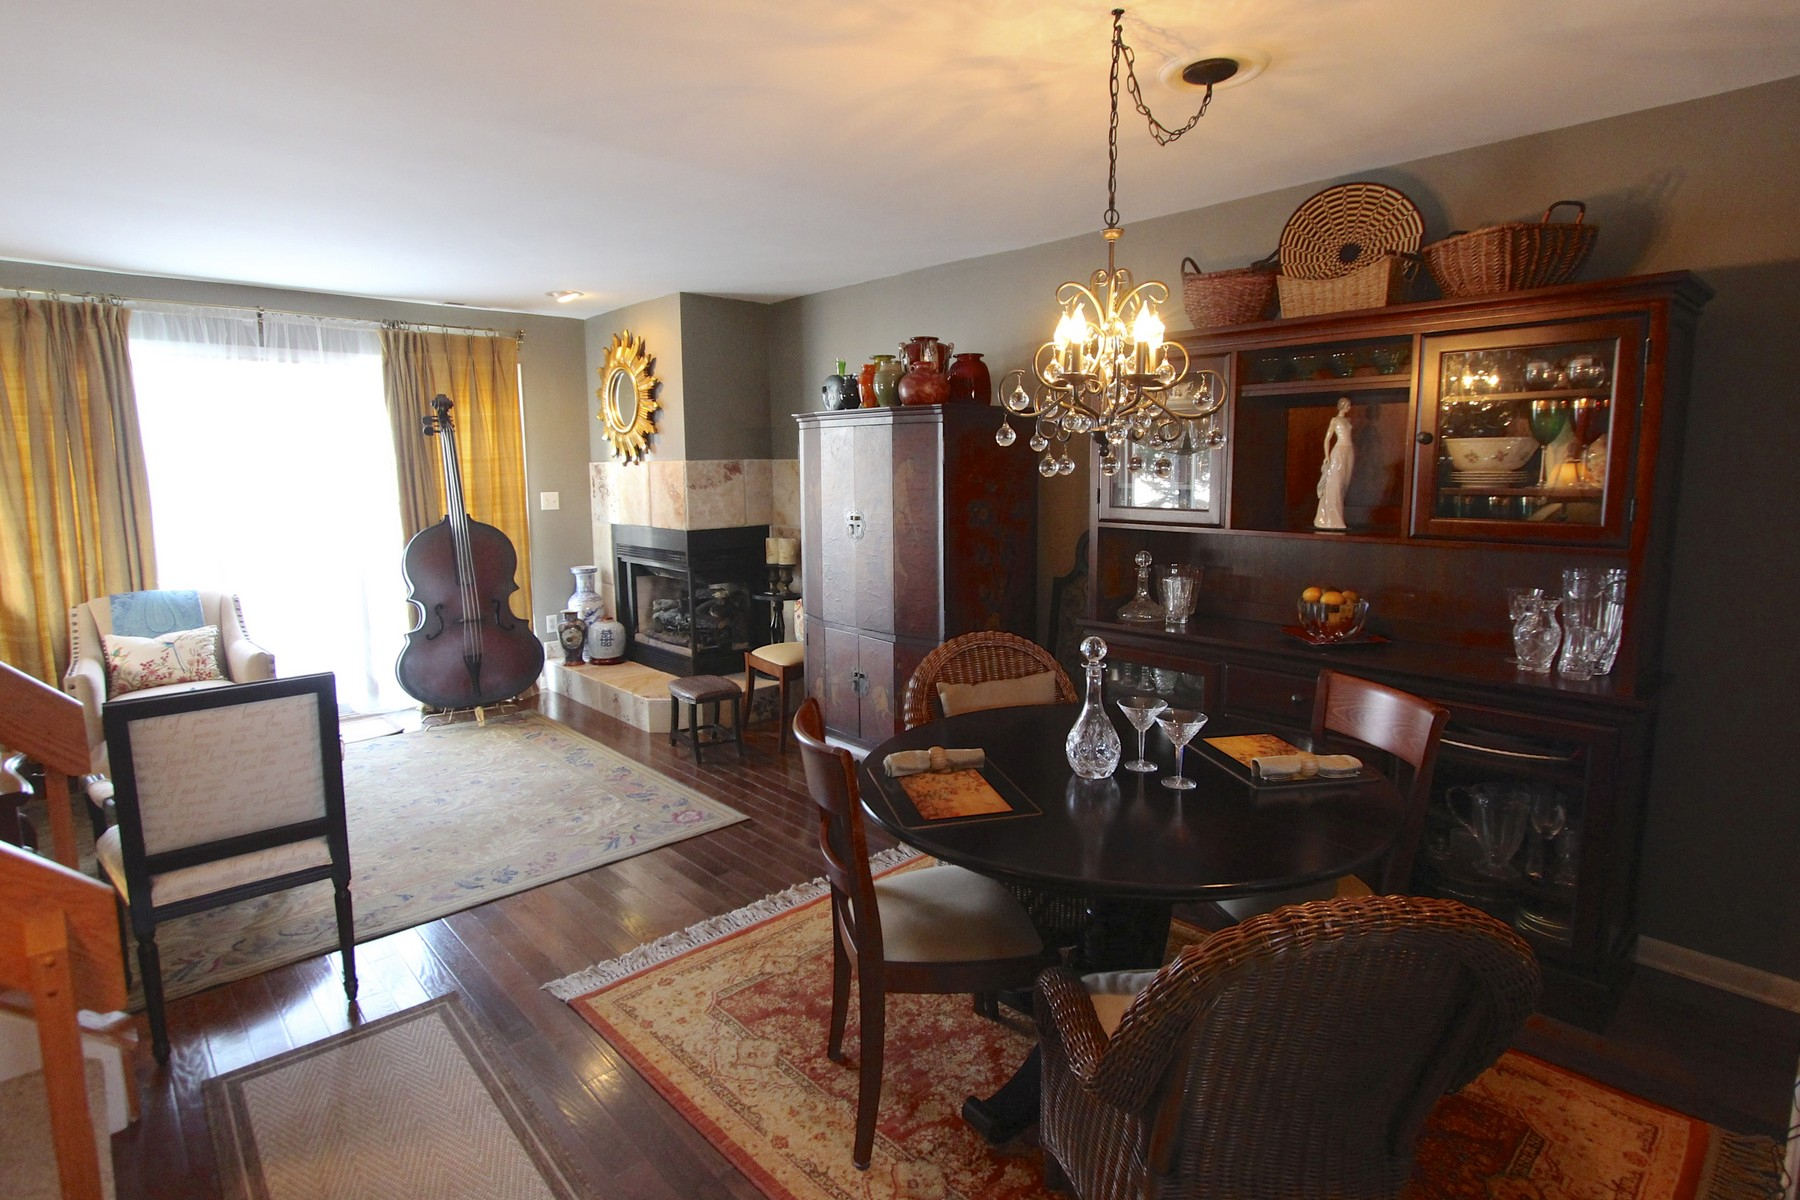 Townhouse for Sale at 223 N 36th Avenue, Unit 3 223 N 36th Avenue UNIT 3, Longport, New Jersey 08403 United States